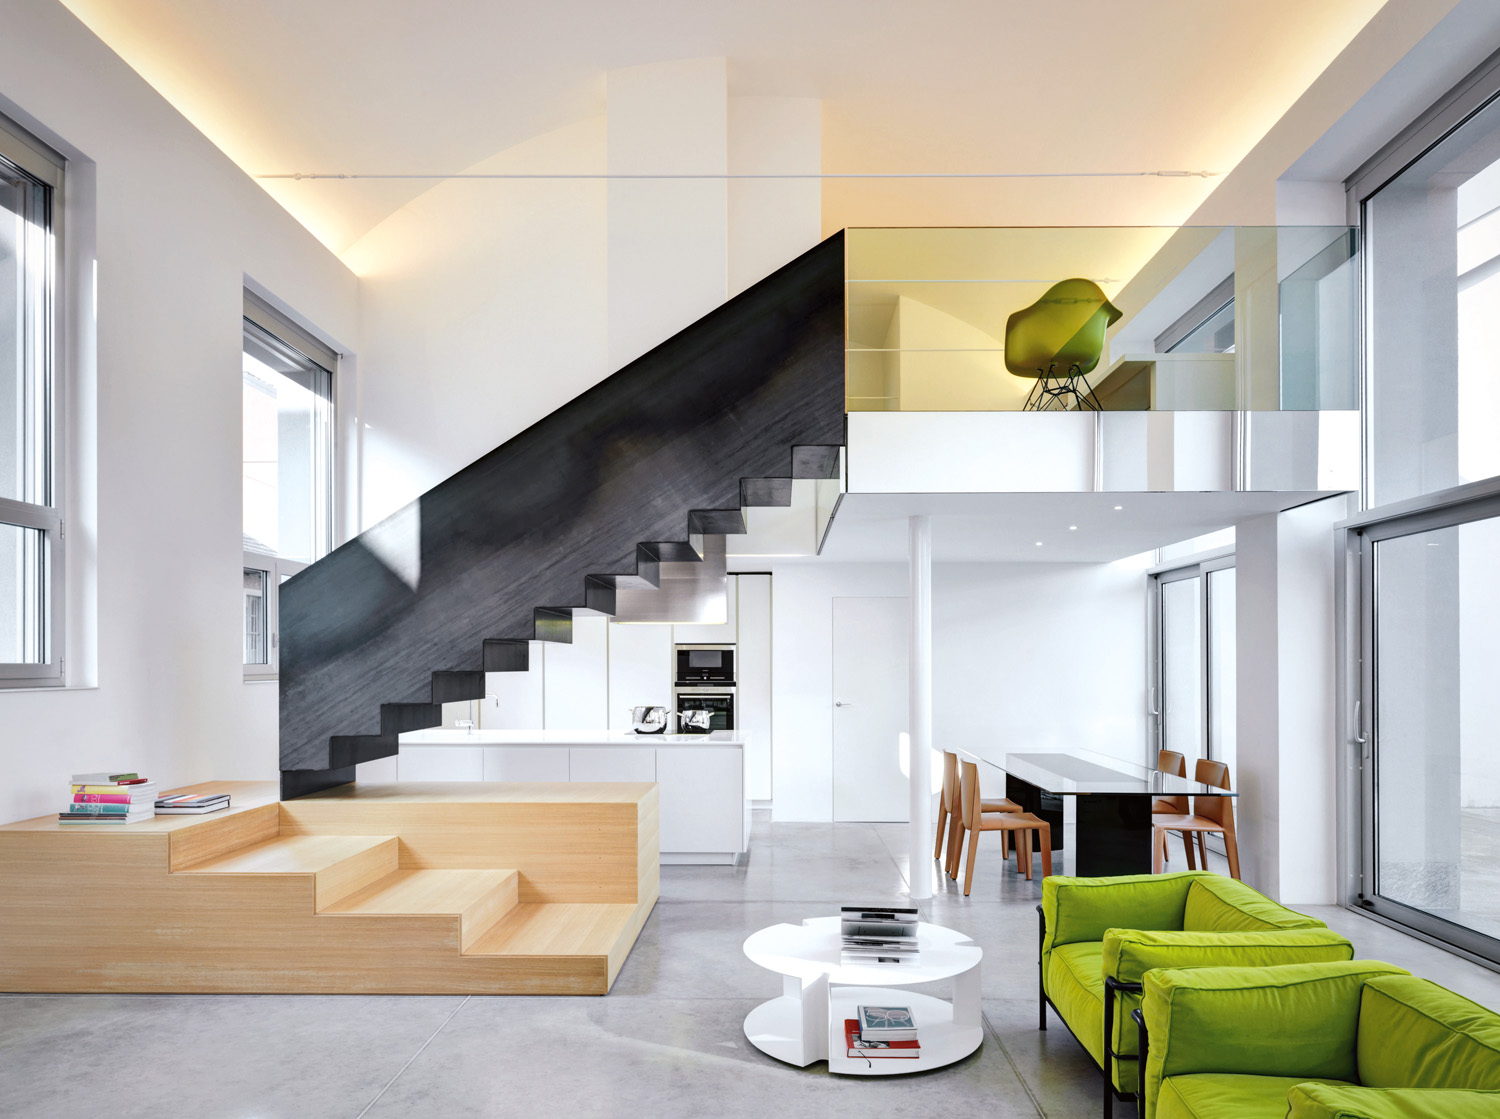 A feature staircase separates the different functions of the open-plan space